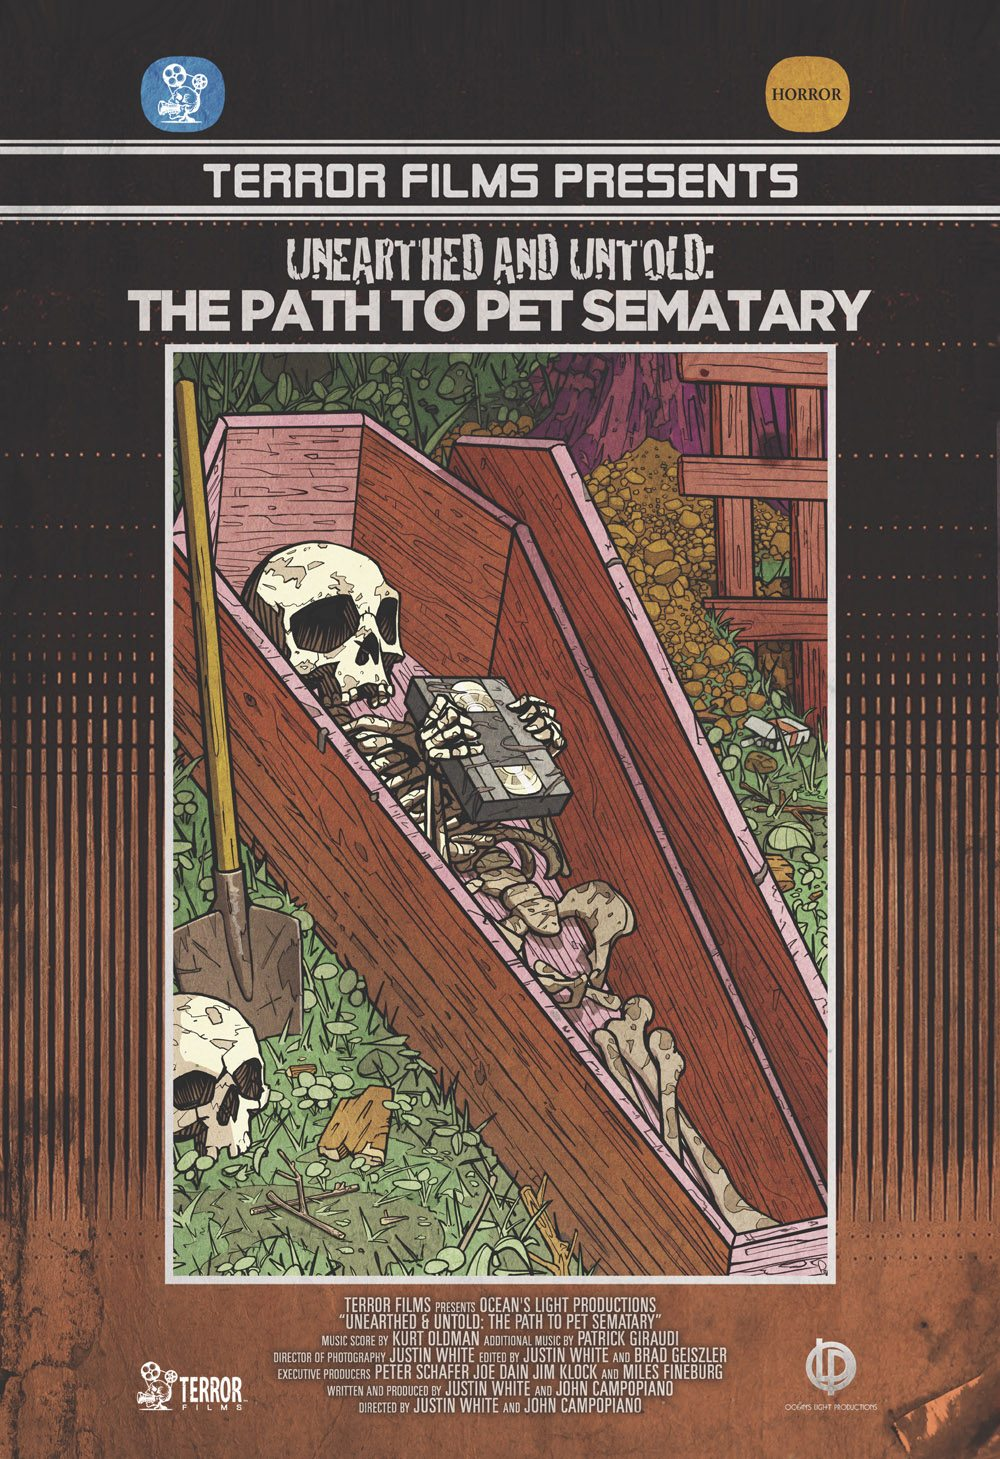 Unearthed and Untold Final Poster05 - Unearthed and Untold: The Path to Pet Sematary to Get Home Video Release